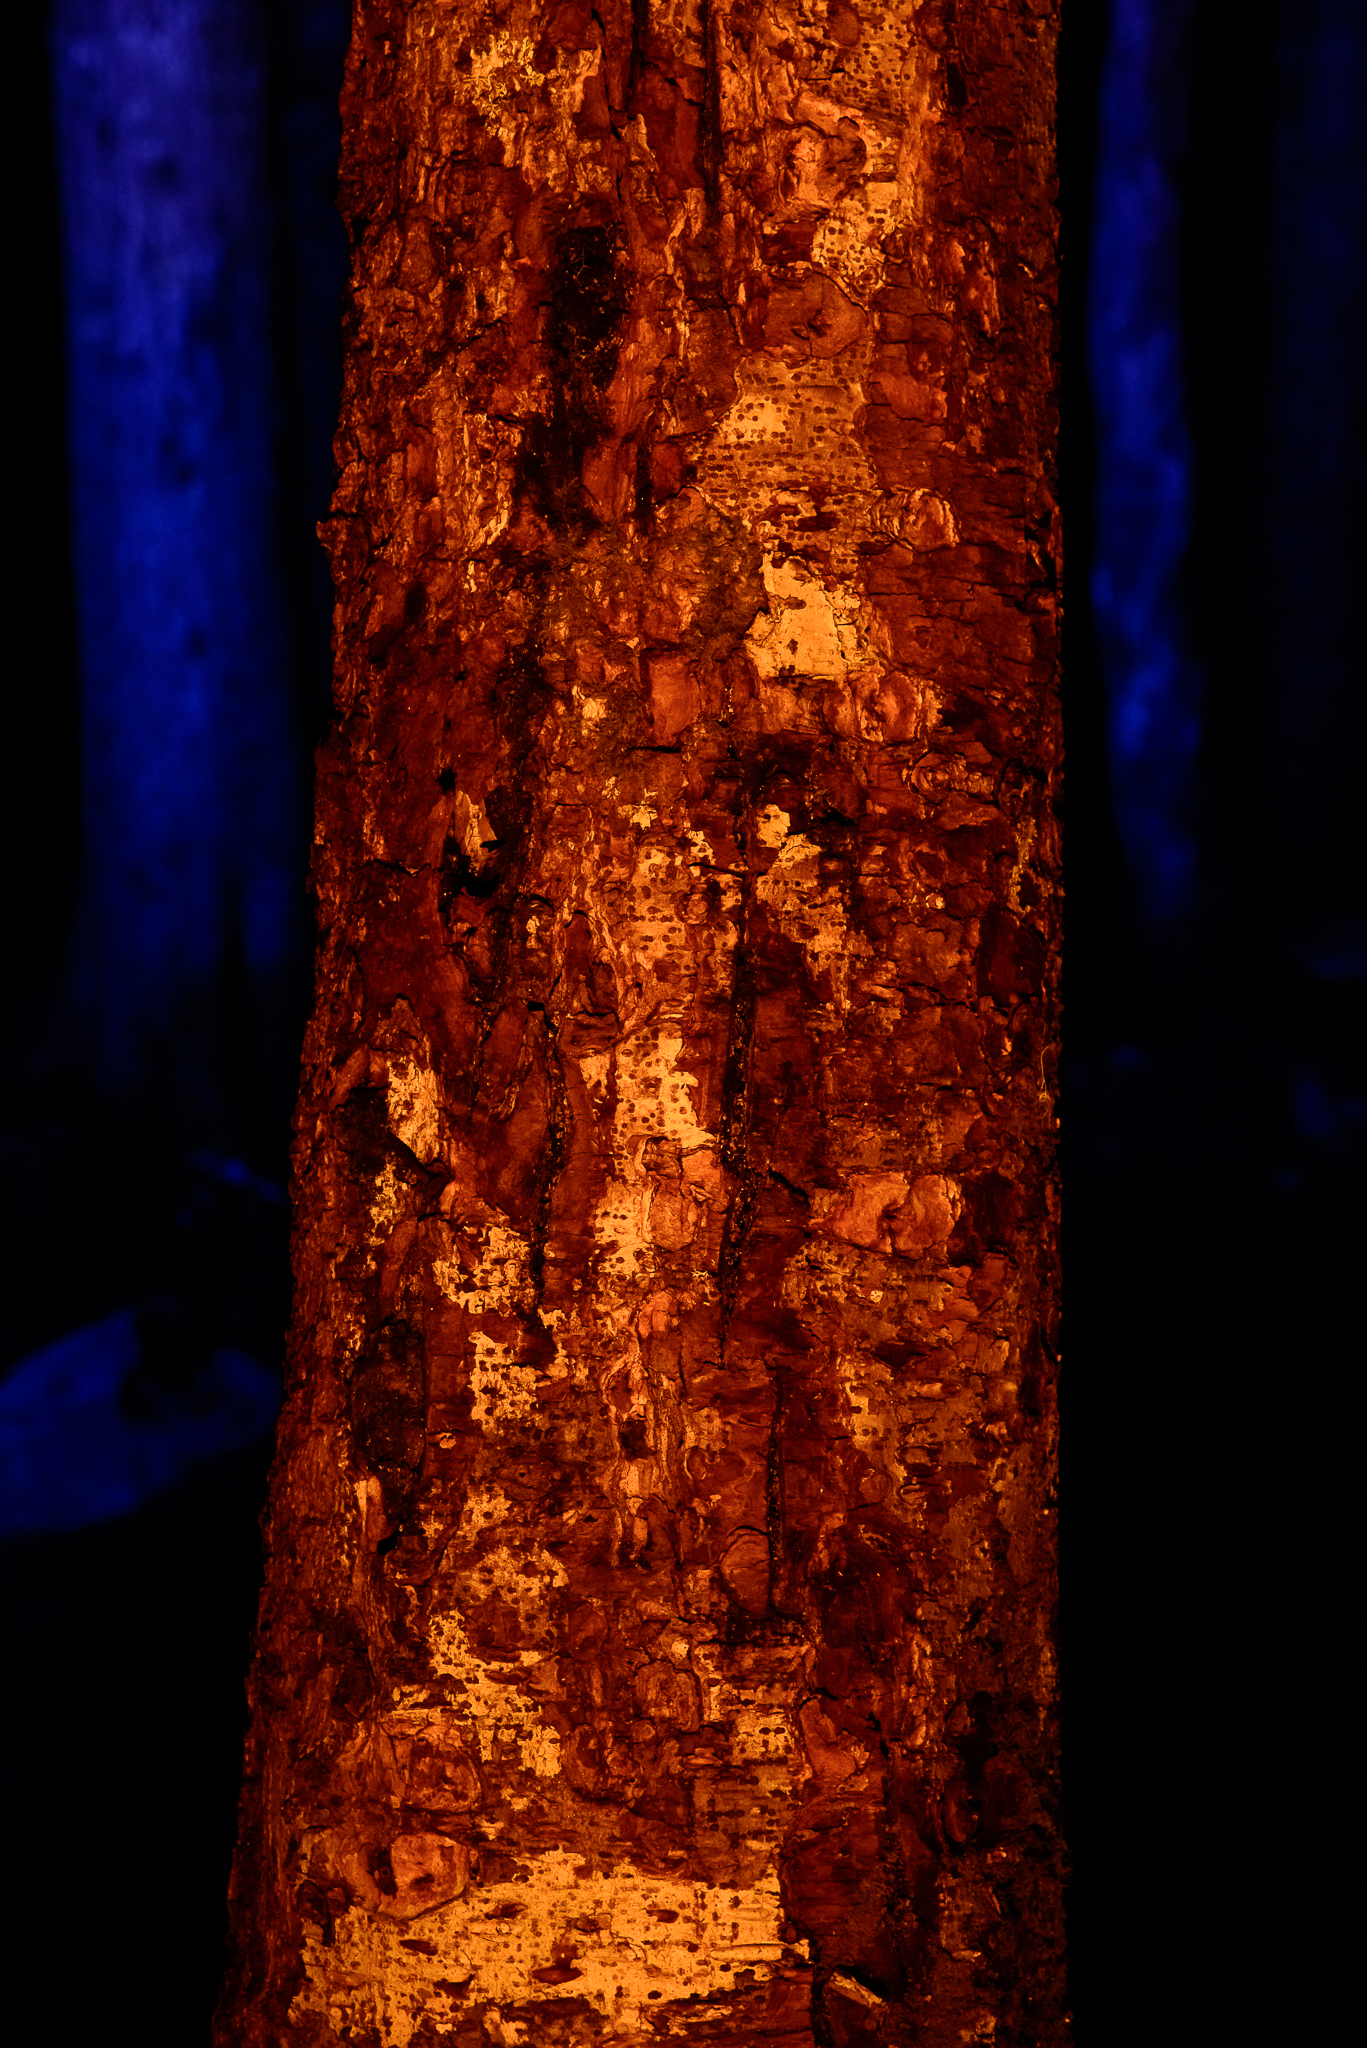 An abstract image created by headlamps and a small fire in the backcountry of Olympic National Park, WA.